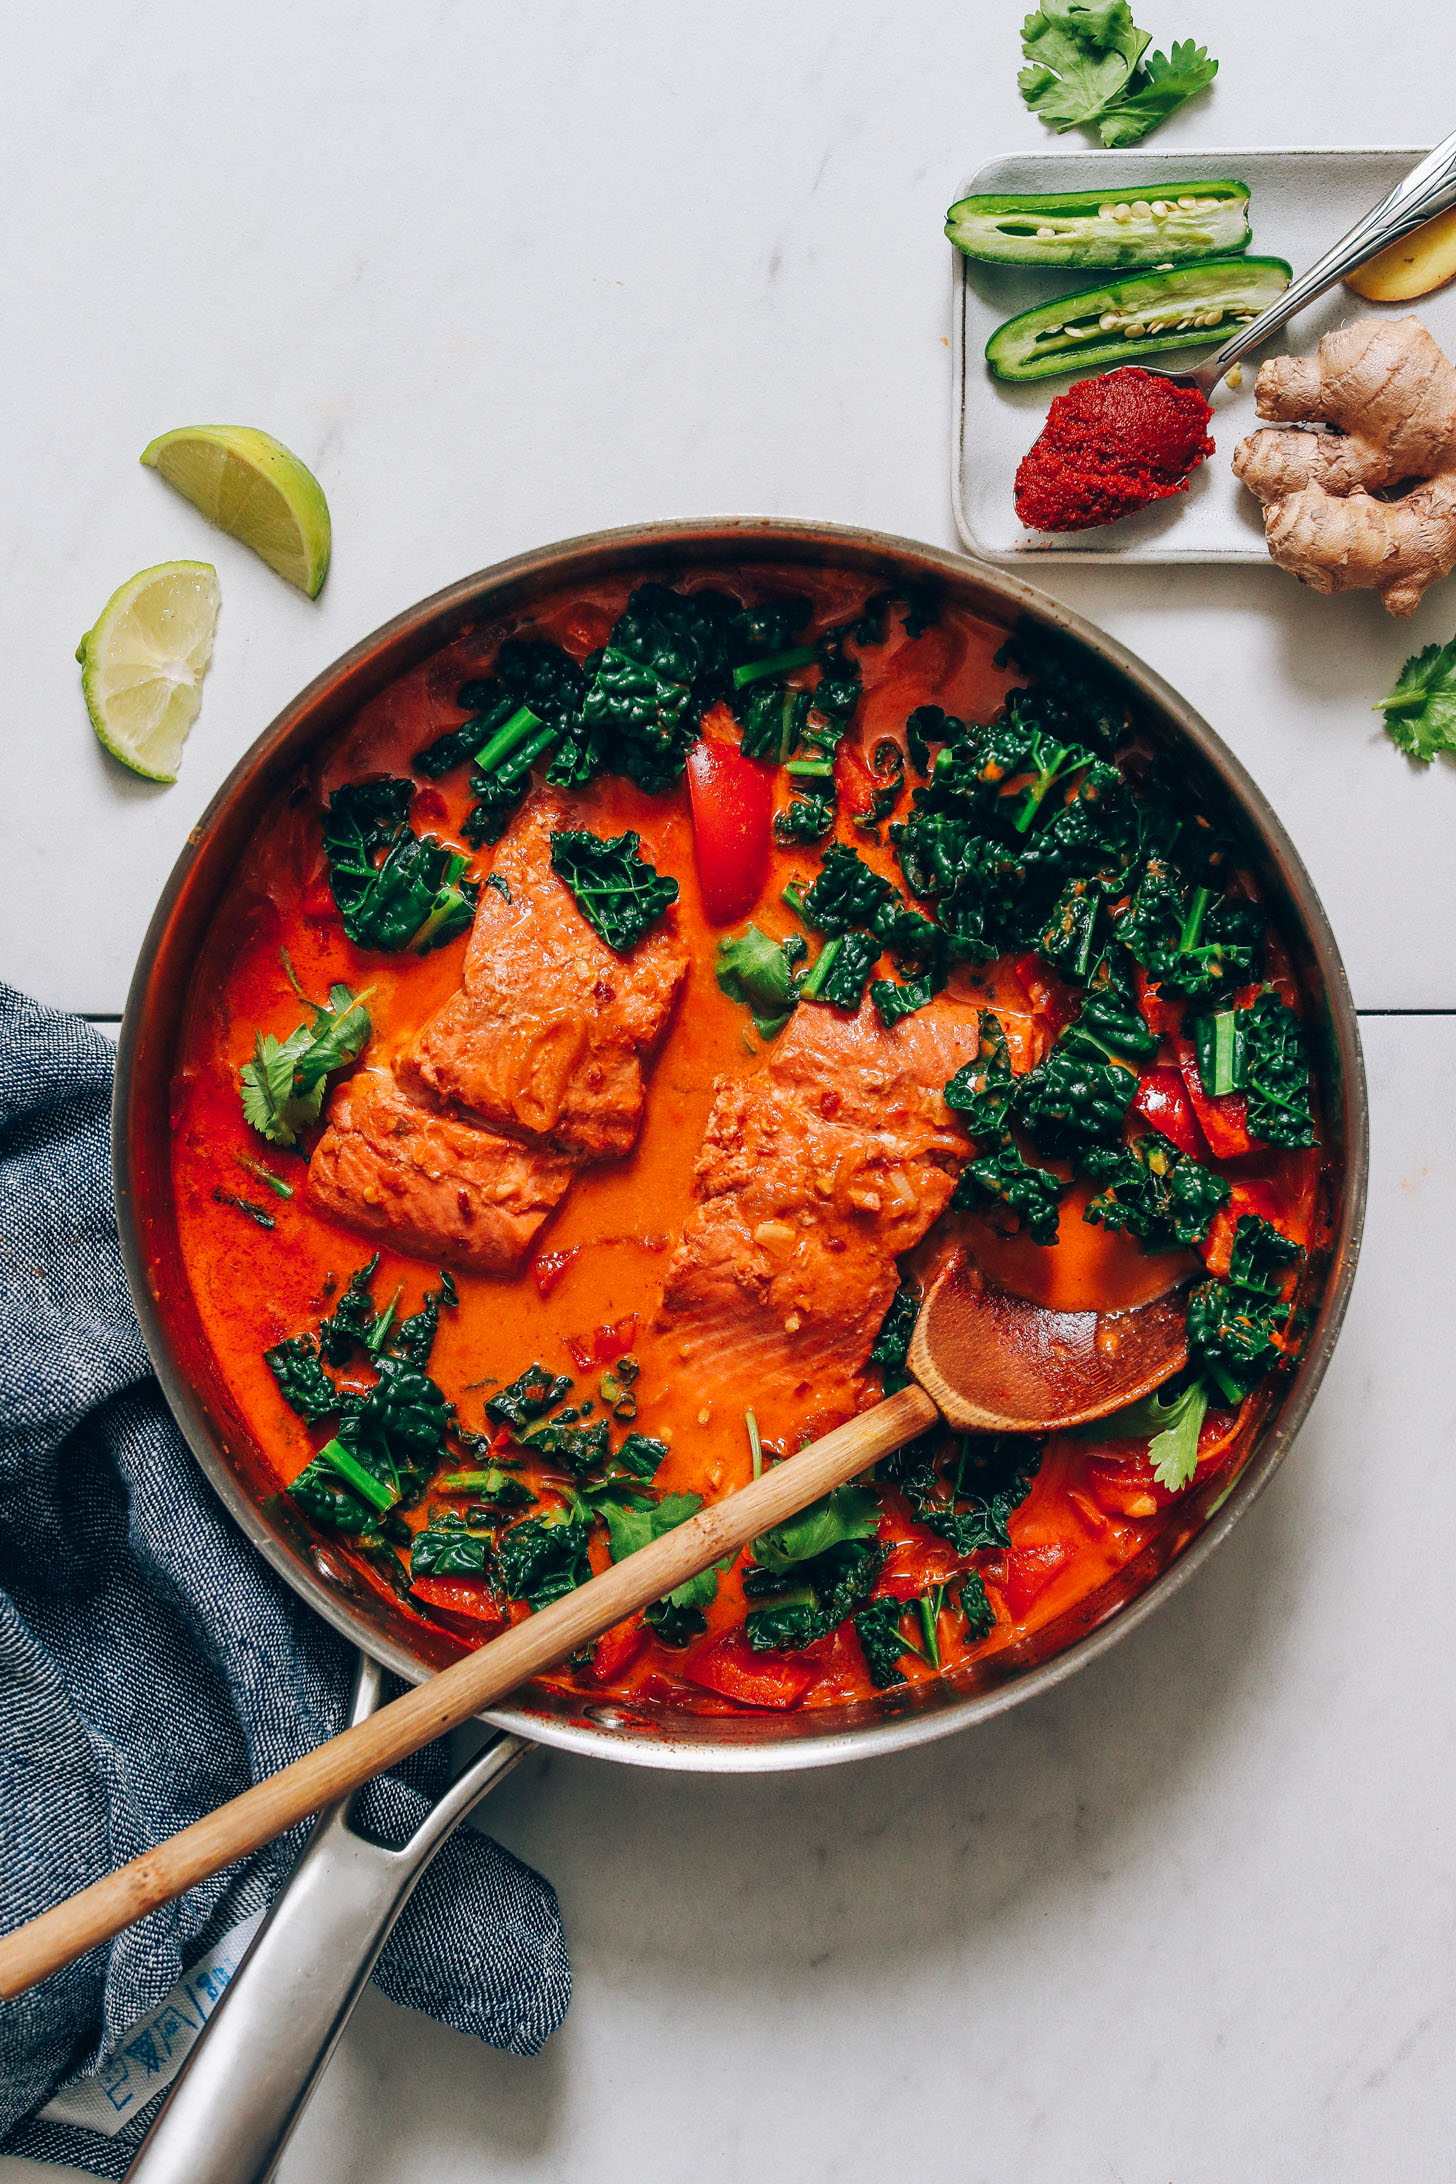 Wooden spoon resting in a pan of our 1-Pan Salmon Red Curry recipe